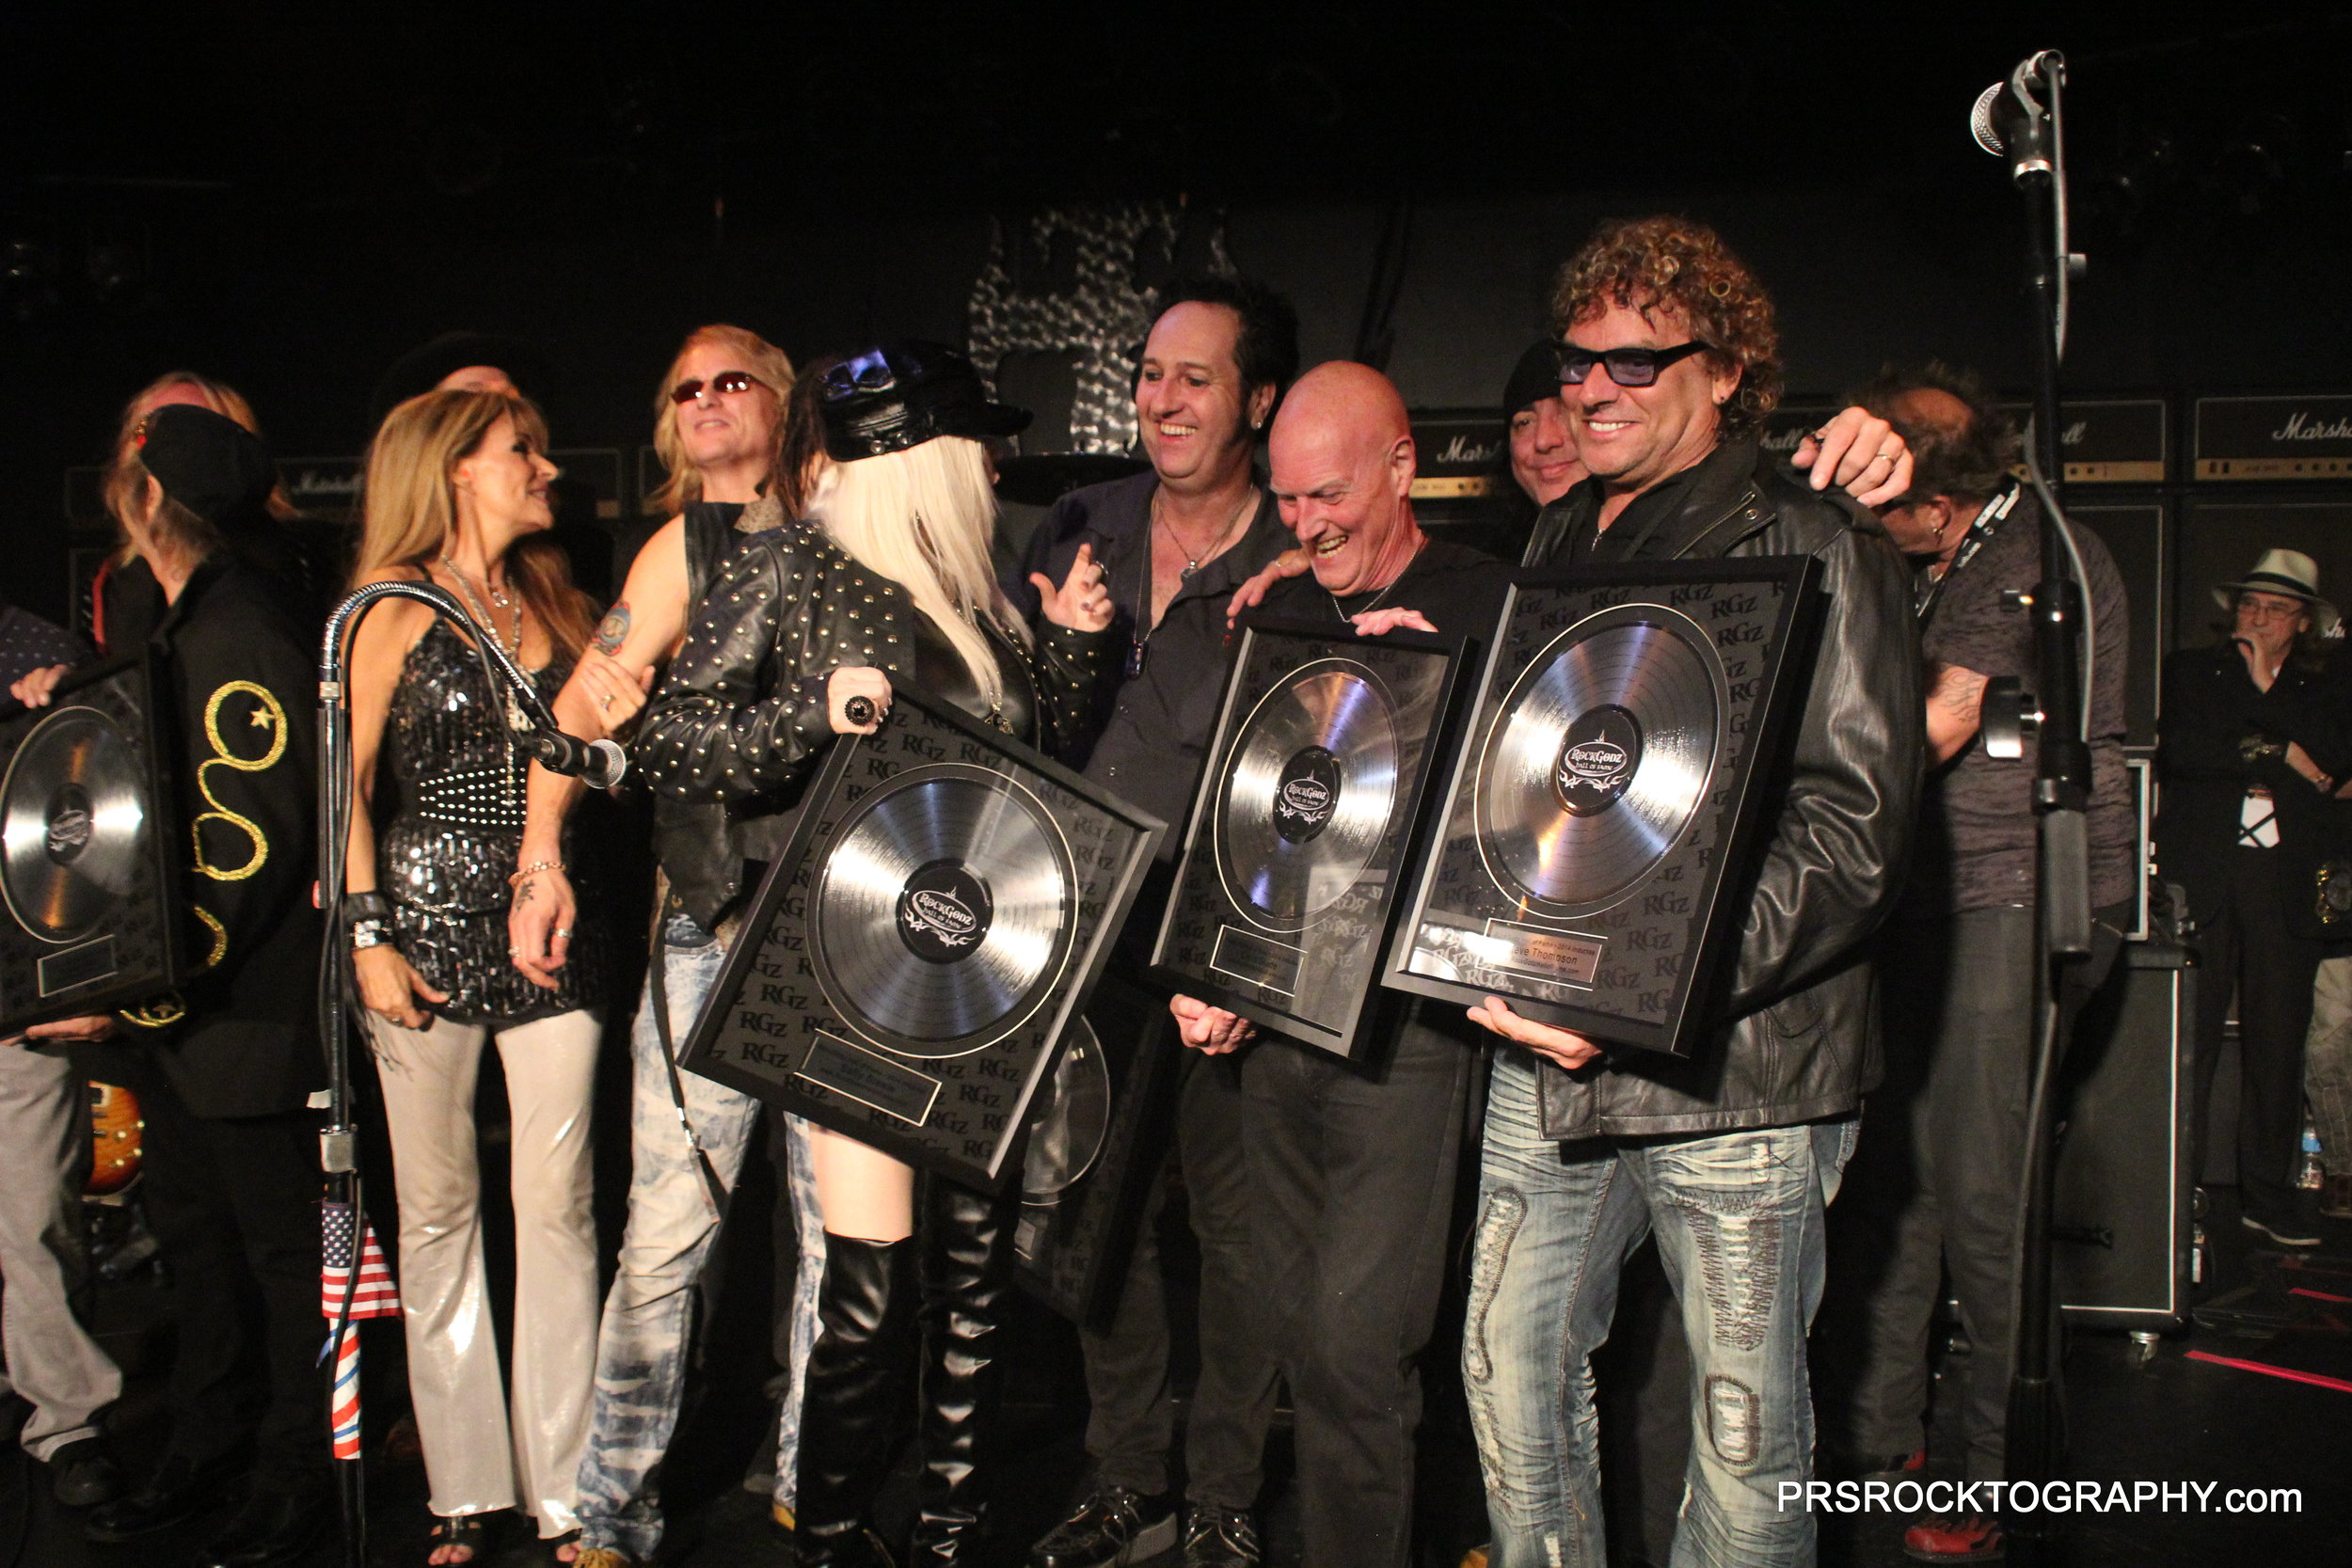 Getting inducted into The Rock Gods Hall of Fave in Las Vegas, NV